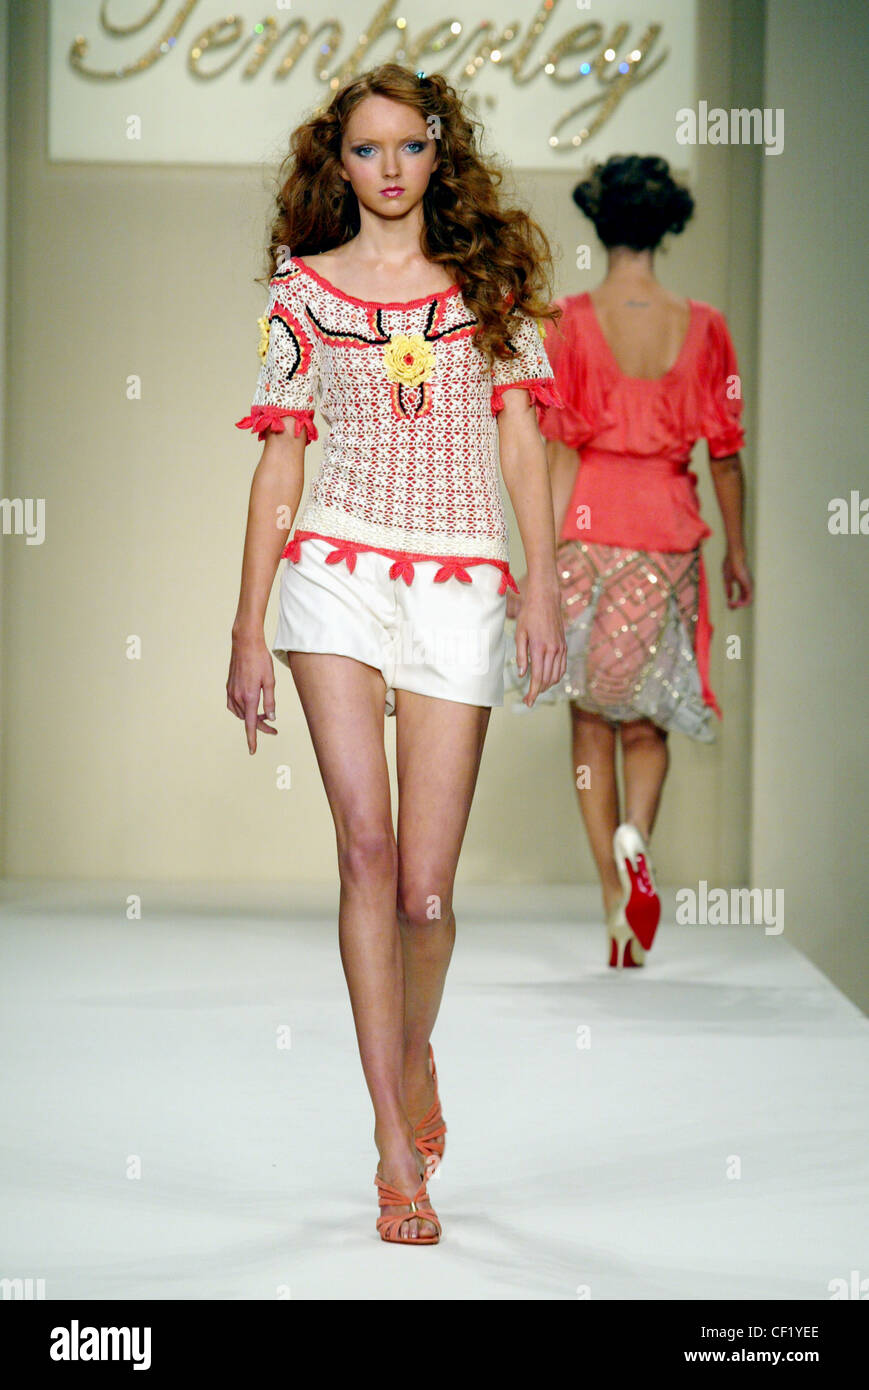 Temperley London Ready To Wear Spring Summer Model Lily